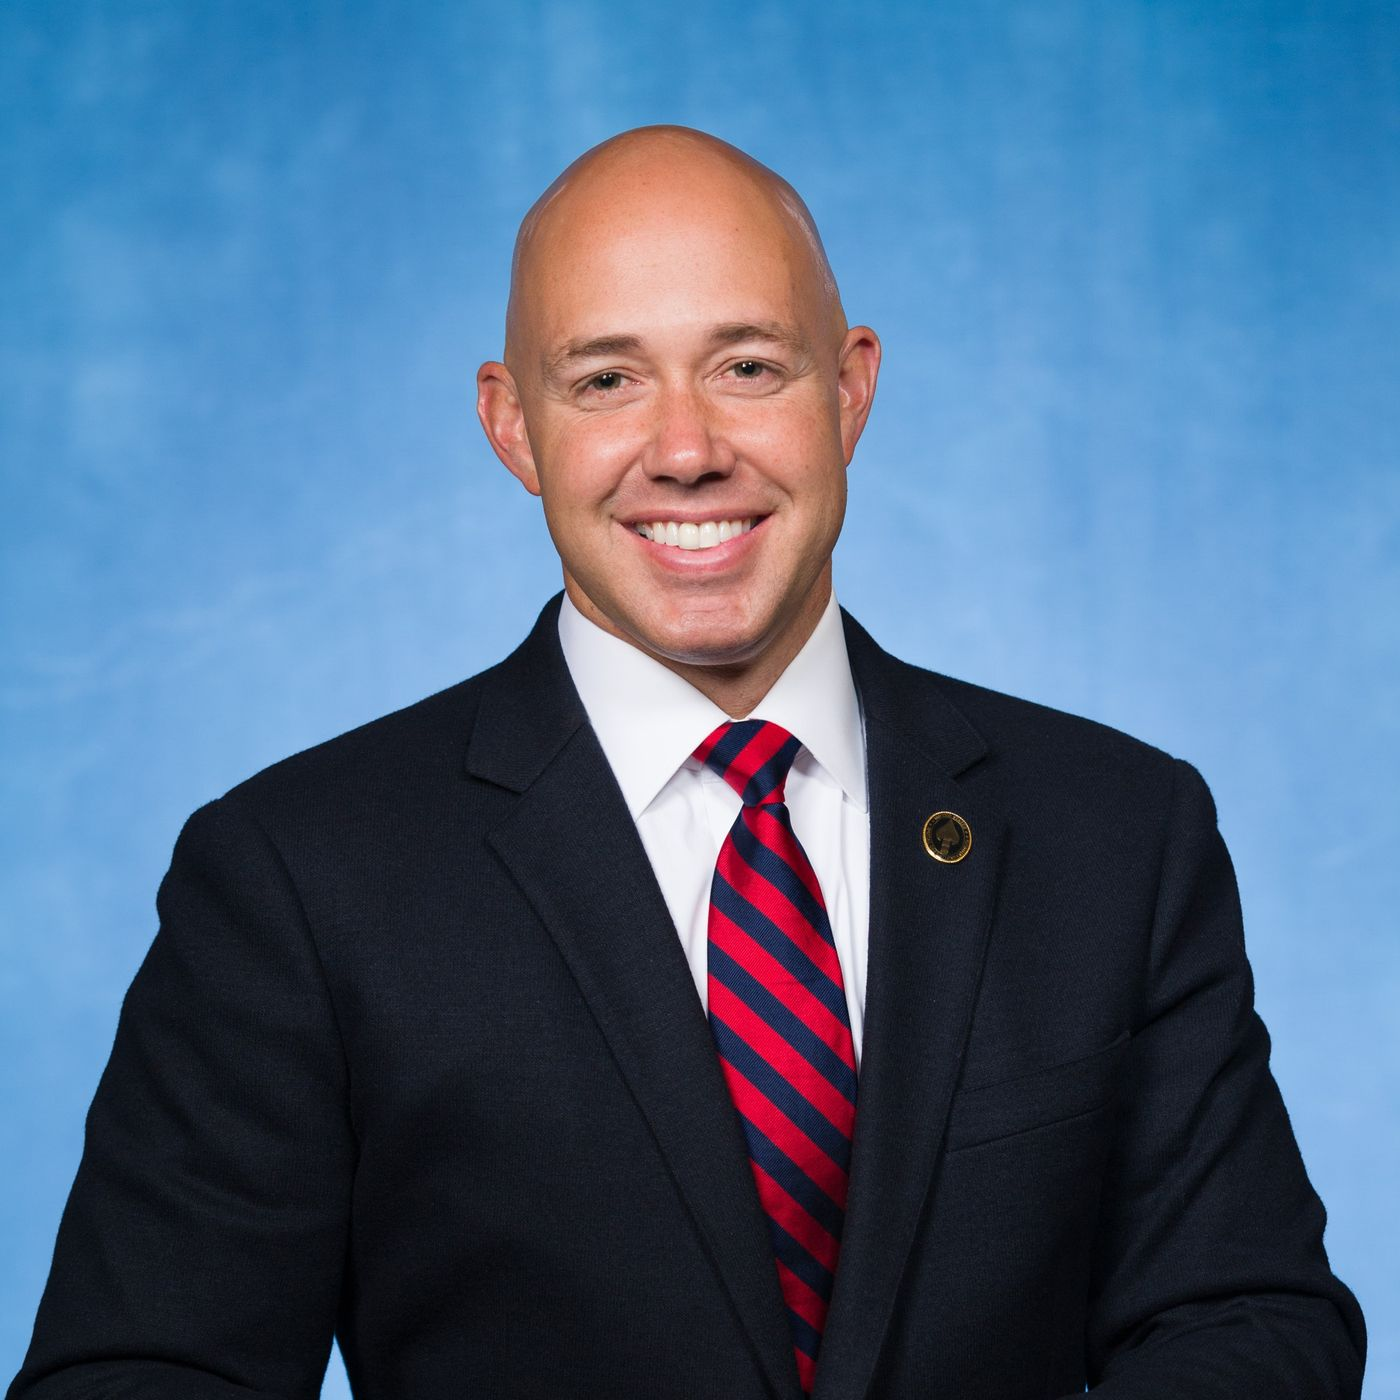 Episode #72 - Florida Congressman Brian Mast